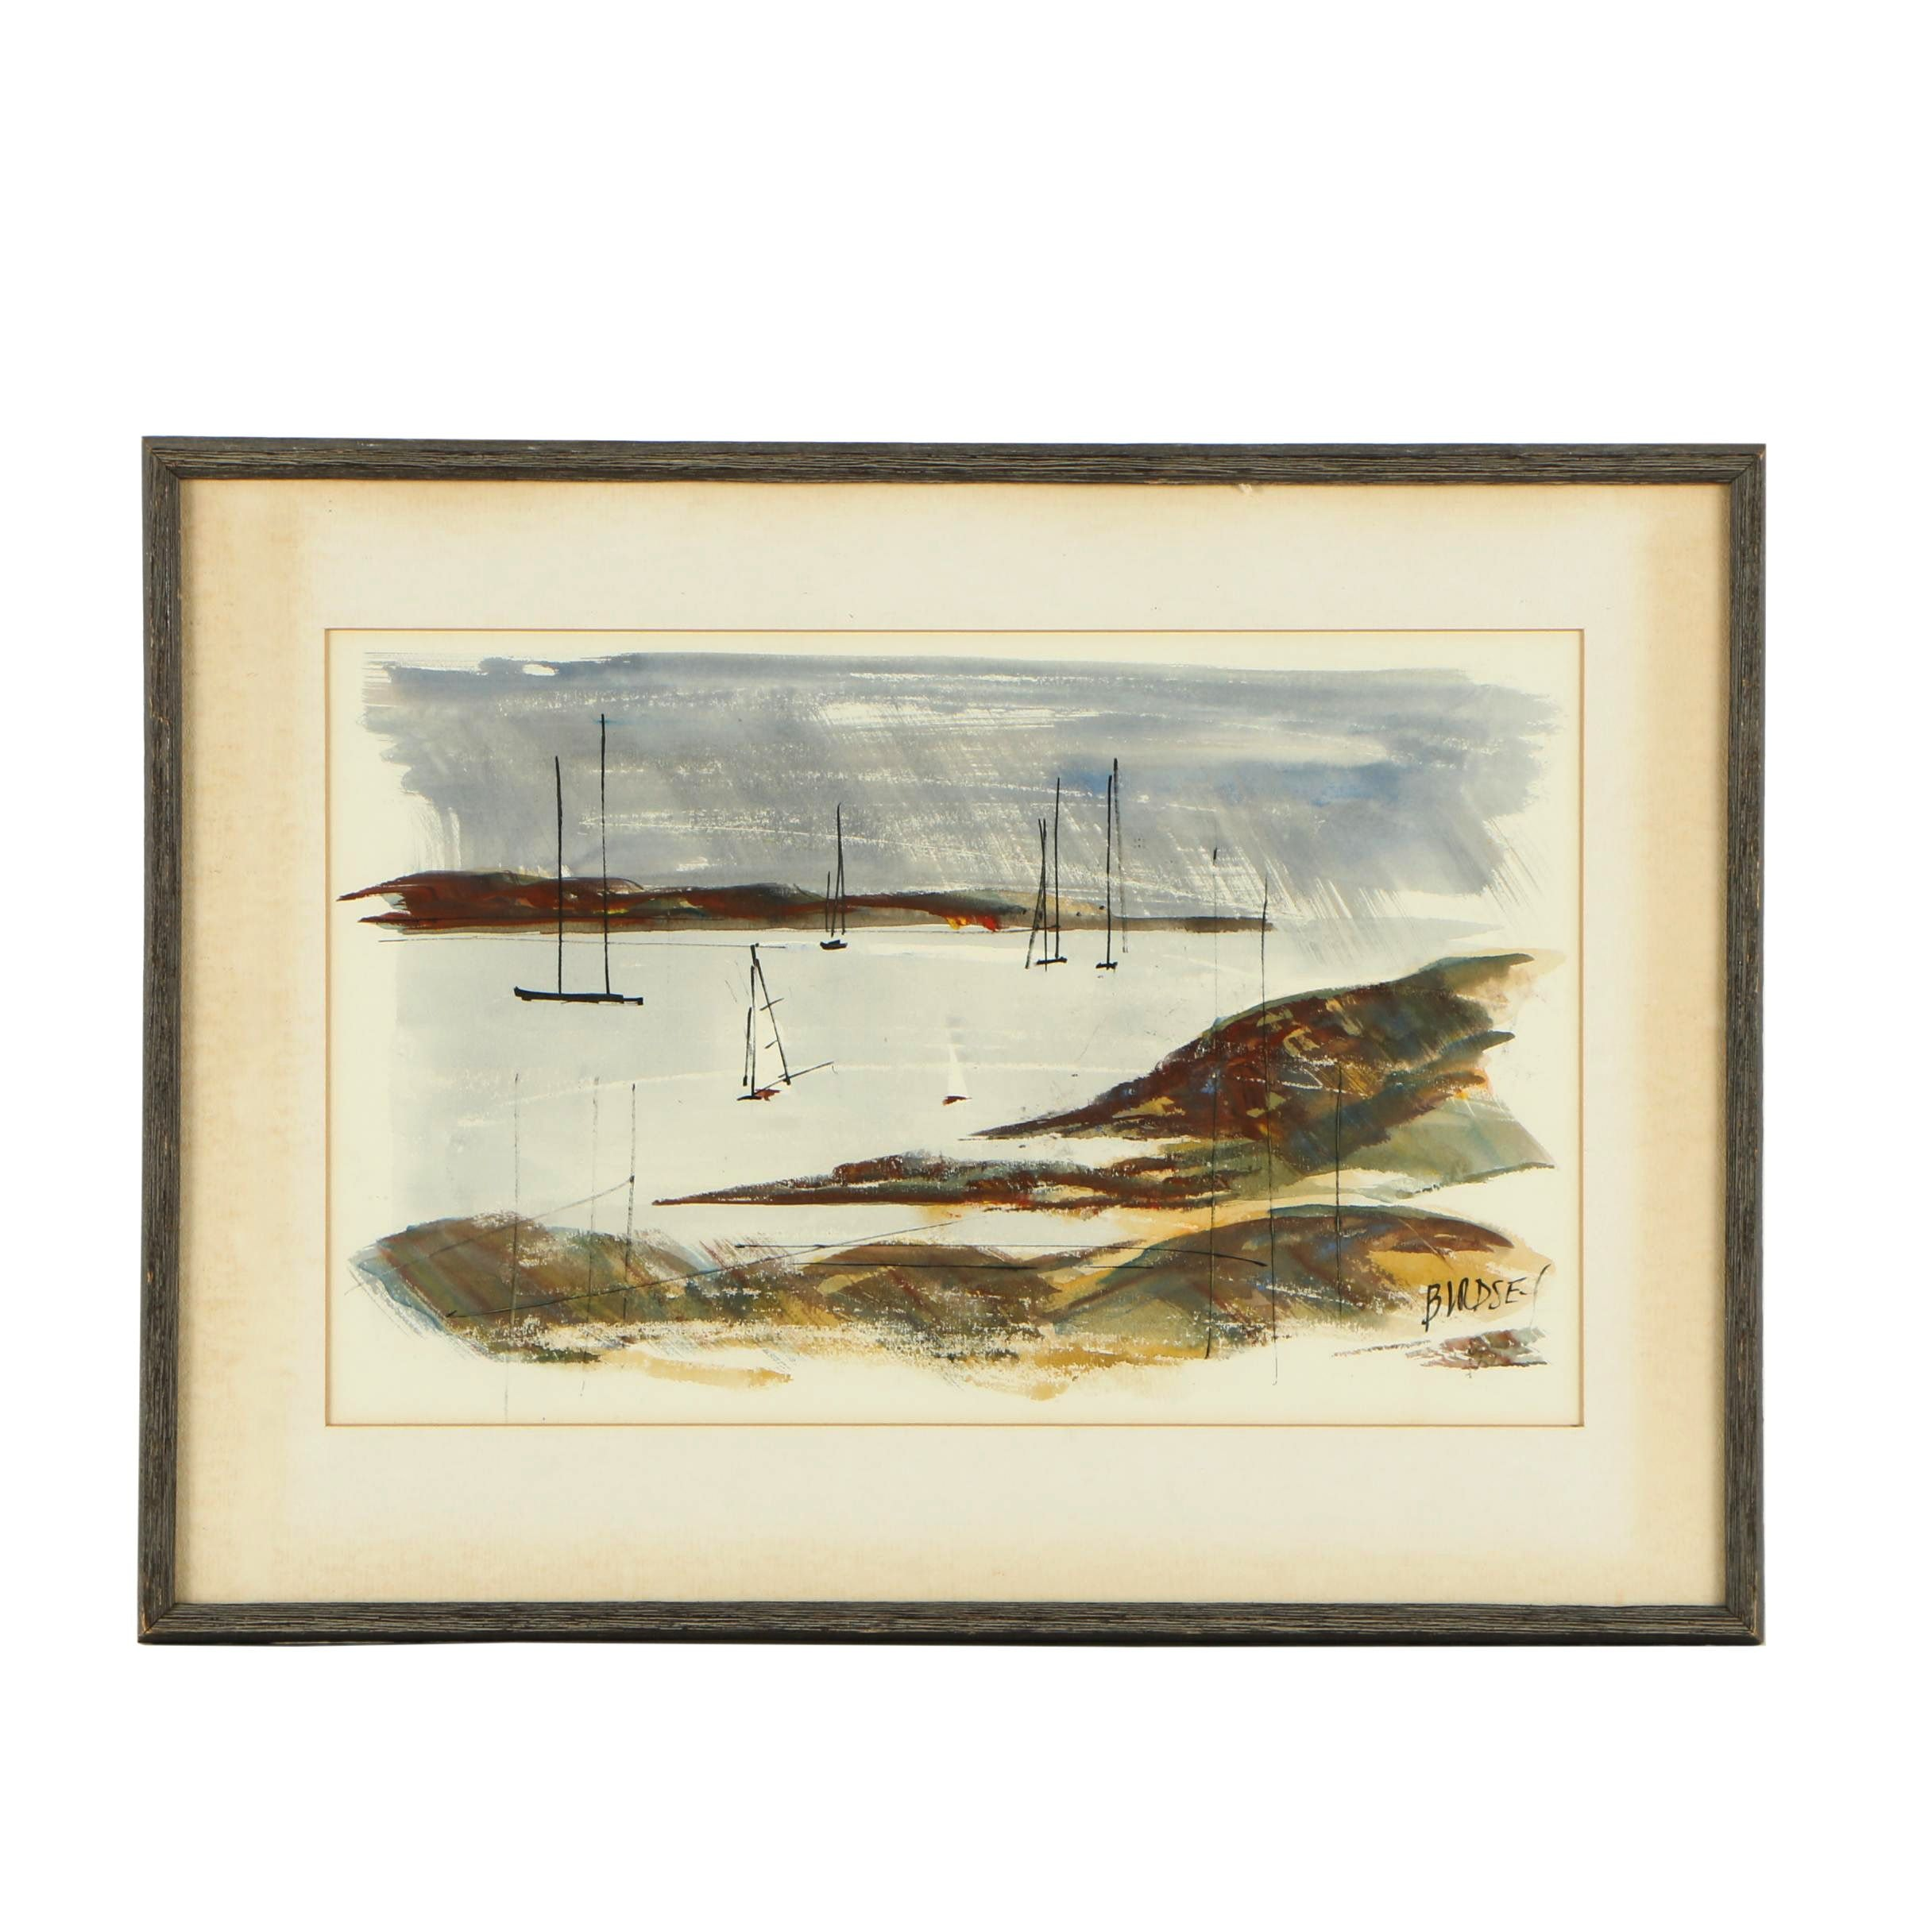 Alfred Birdsey Watercolor and Gouache Painting of Abstract Harbor